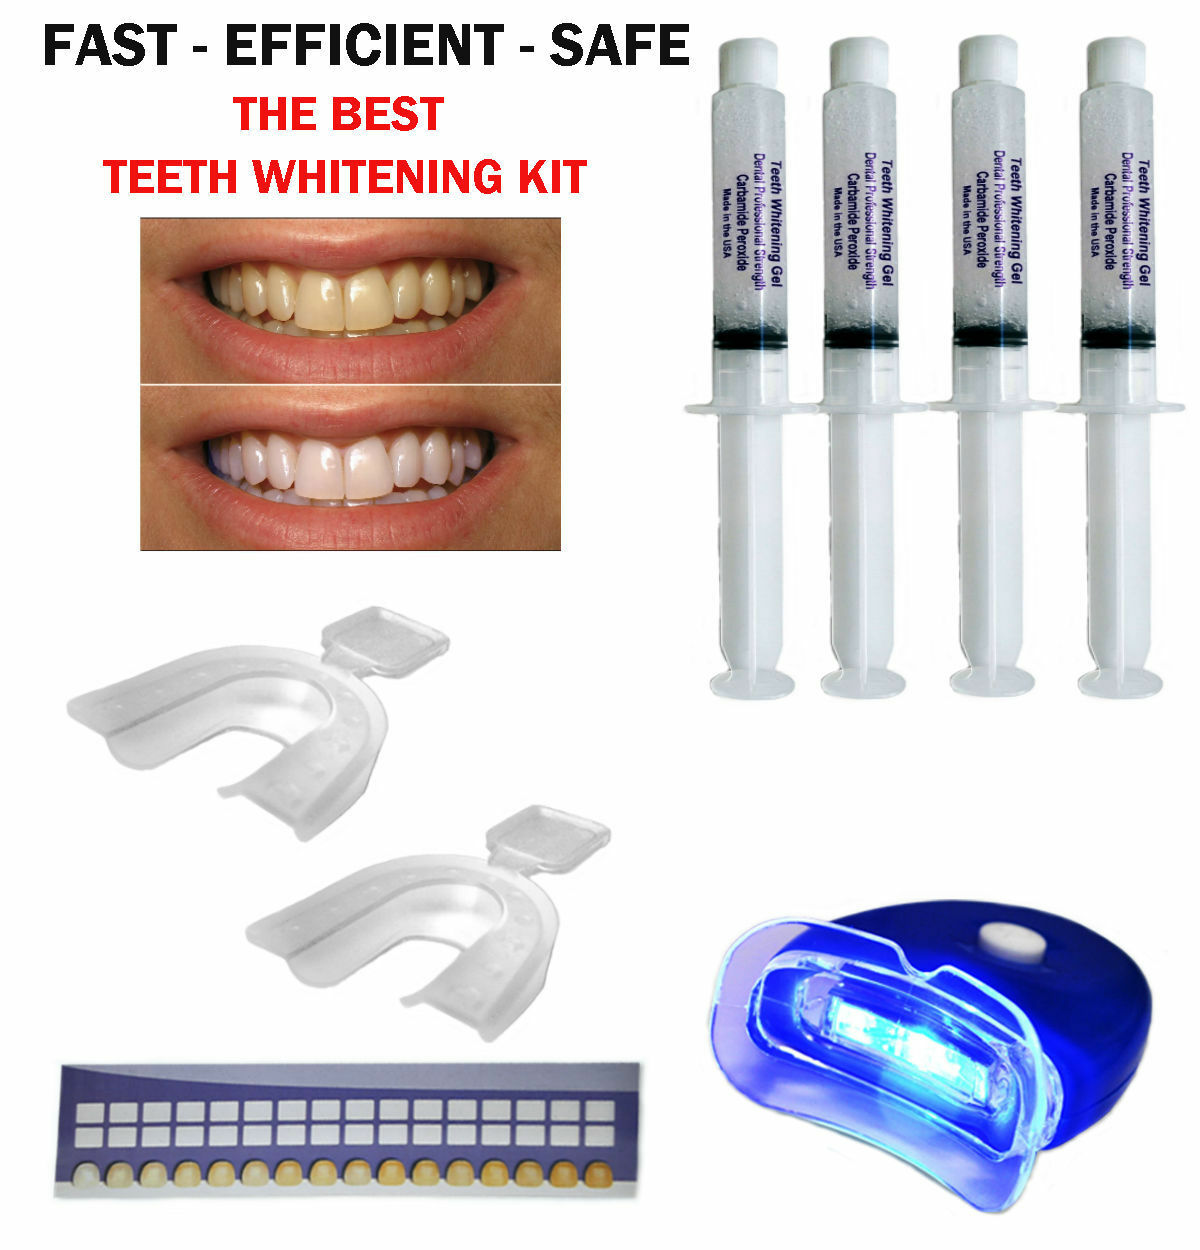 FULL WHITENING KIT: 44% Carbamide Peroxide Gel & Trays & Case